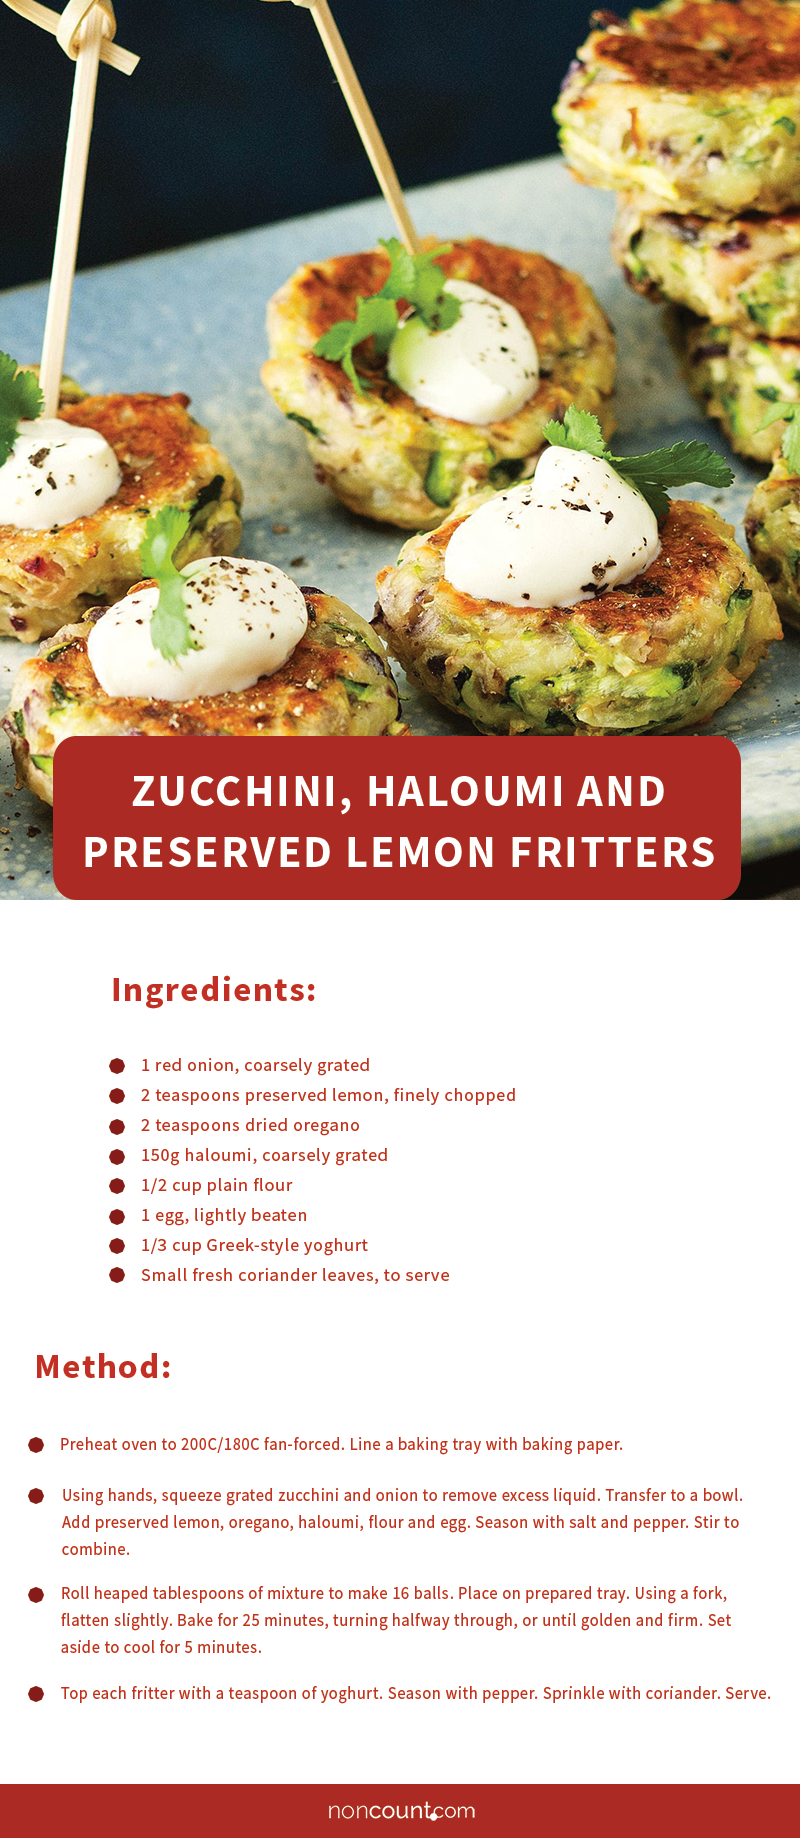 Zucchini, Haloumi and Preserved Lemon Fritters